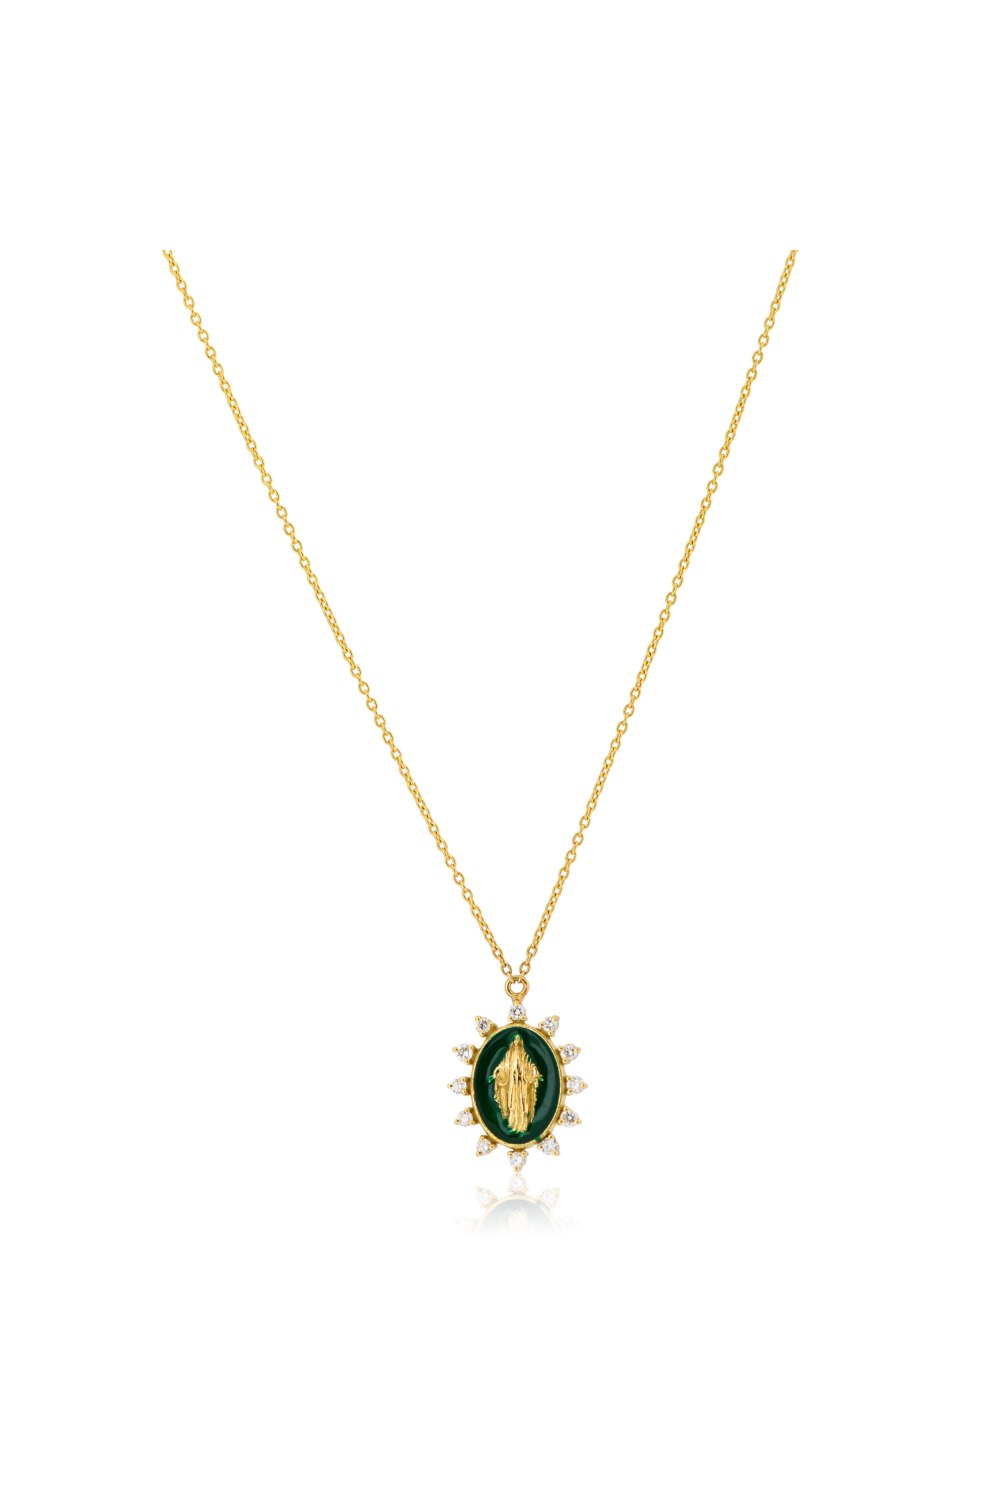 Kessaris-Madonna Diamond Necklace